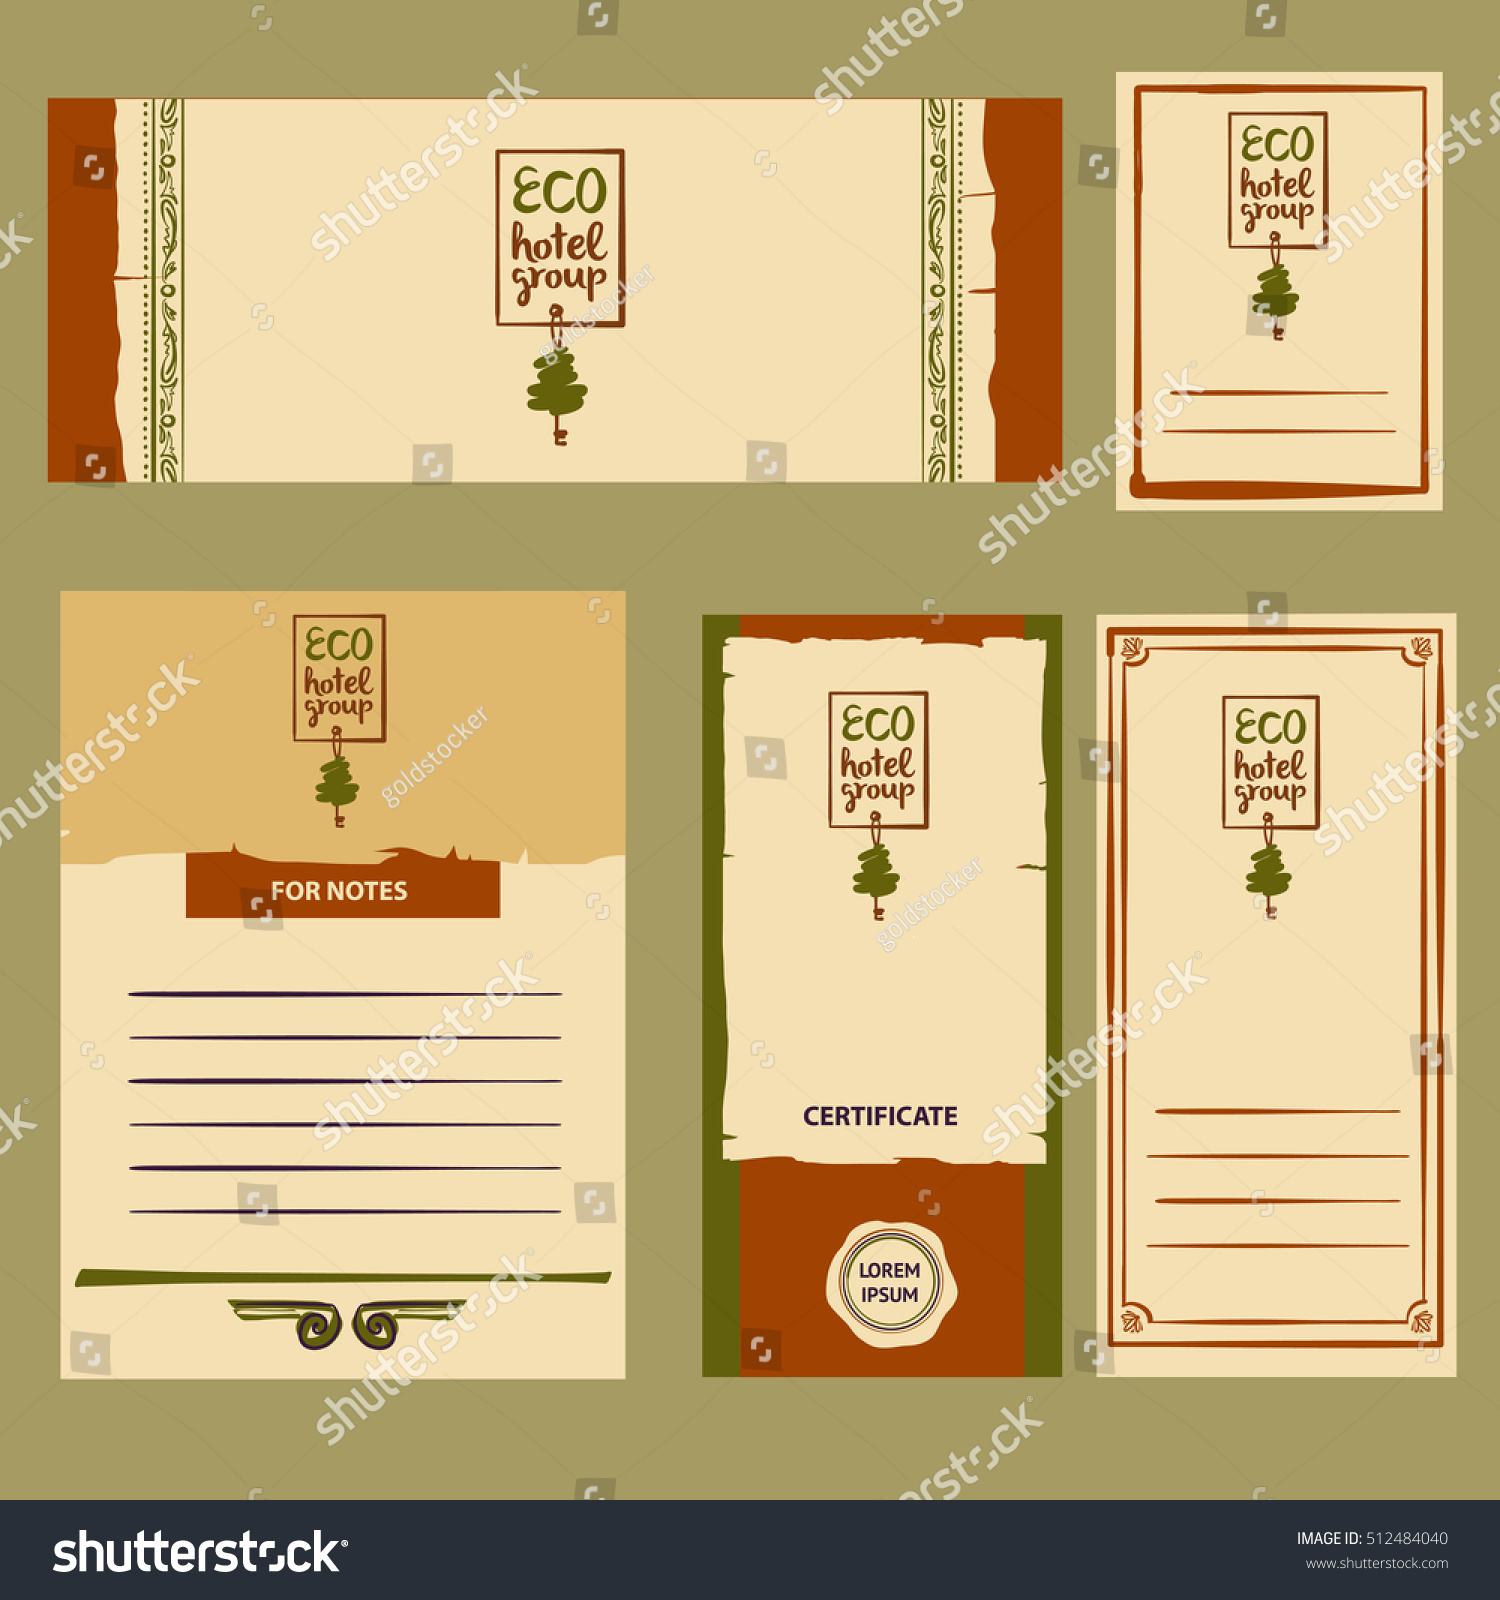 Element corporate identity banner poster card stock vector element of corporate identity banner poster card with green tree and key for pronofoot35fo Images